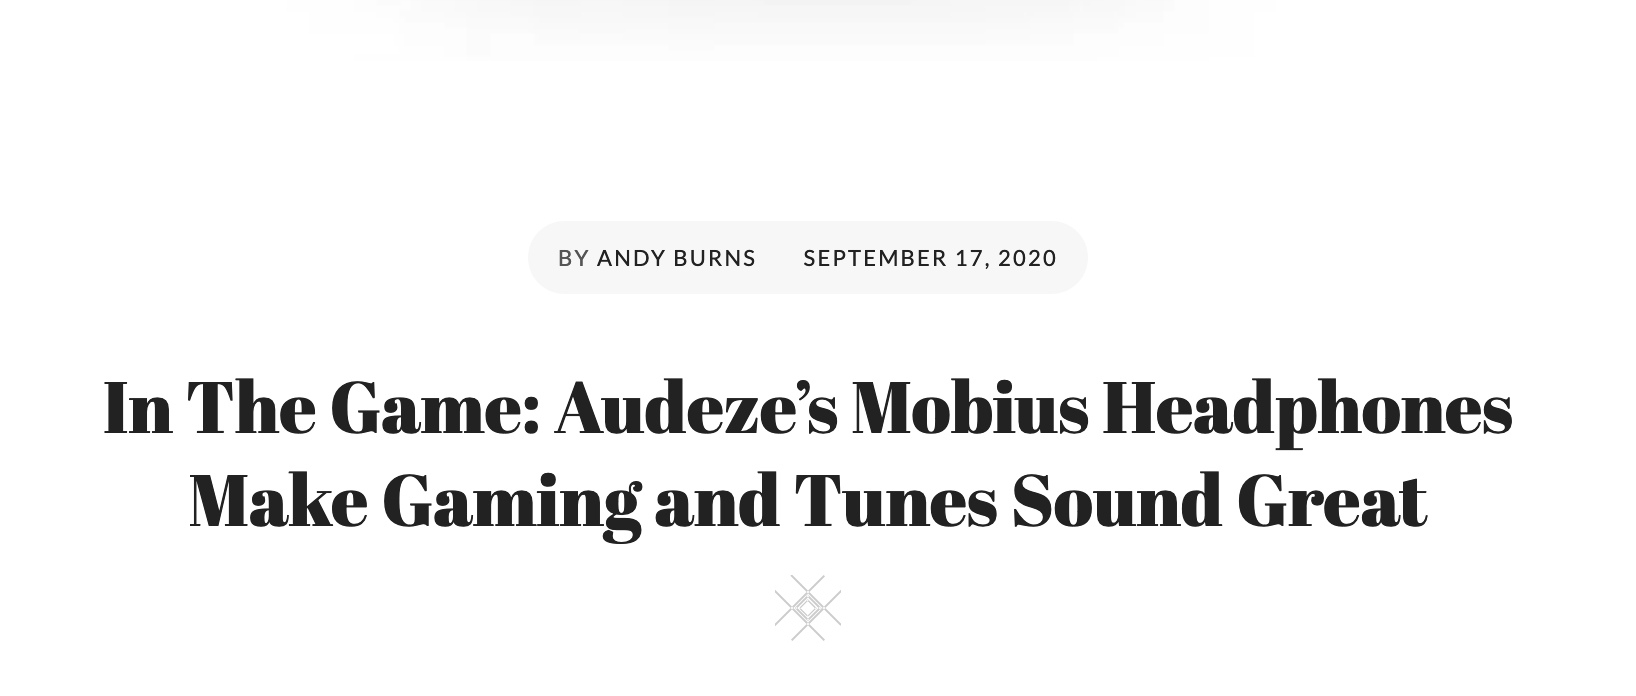 Biff Bam Pop Reviews the Audeze Mobius